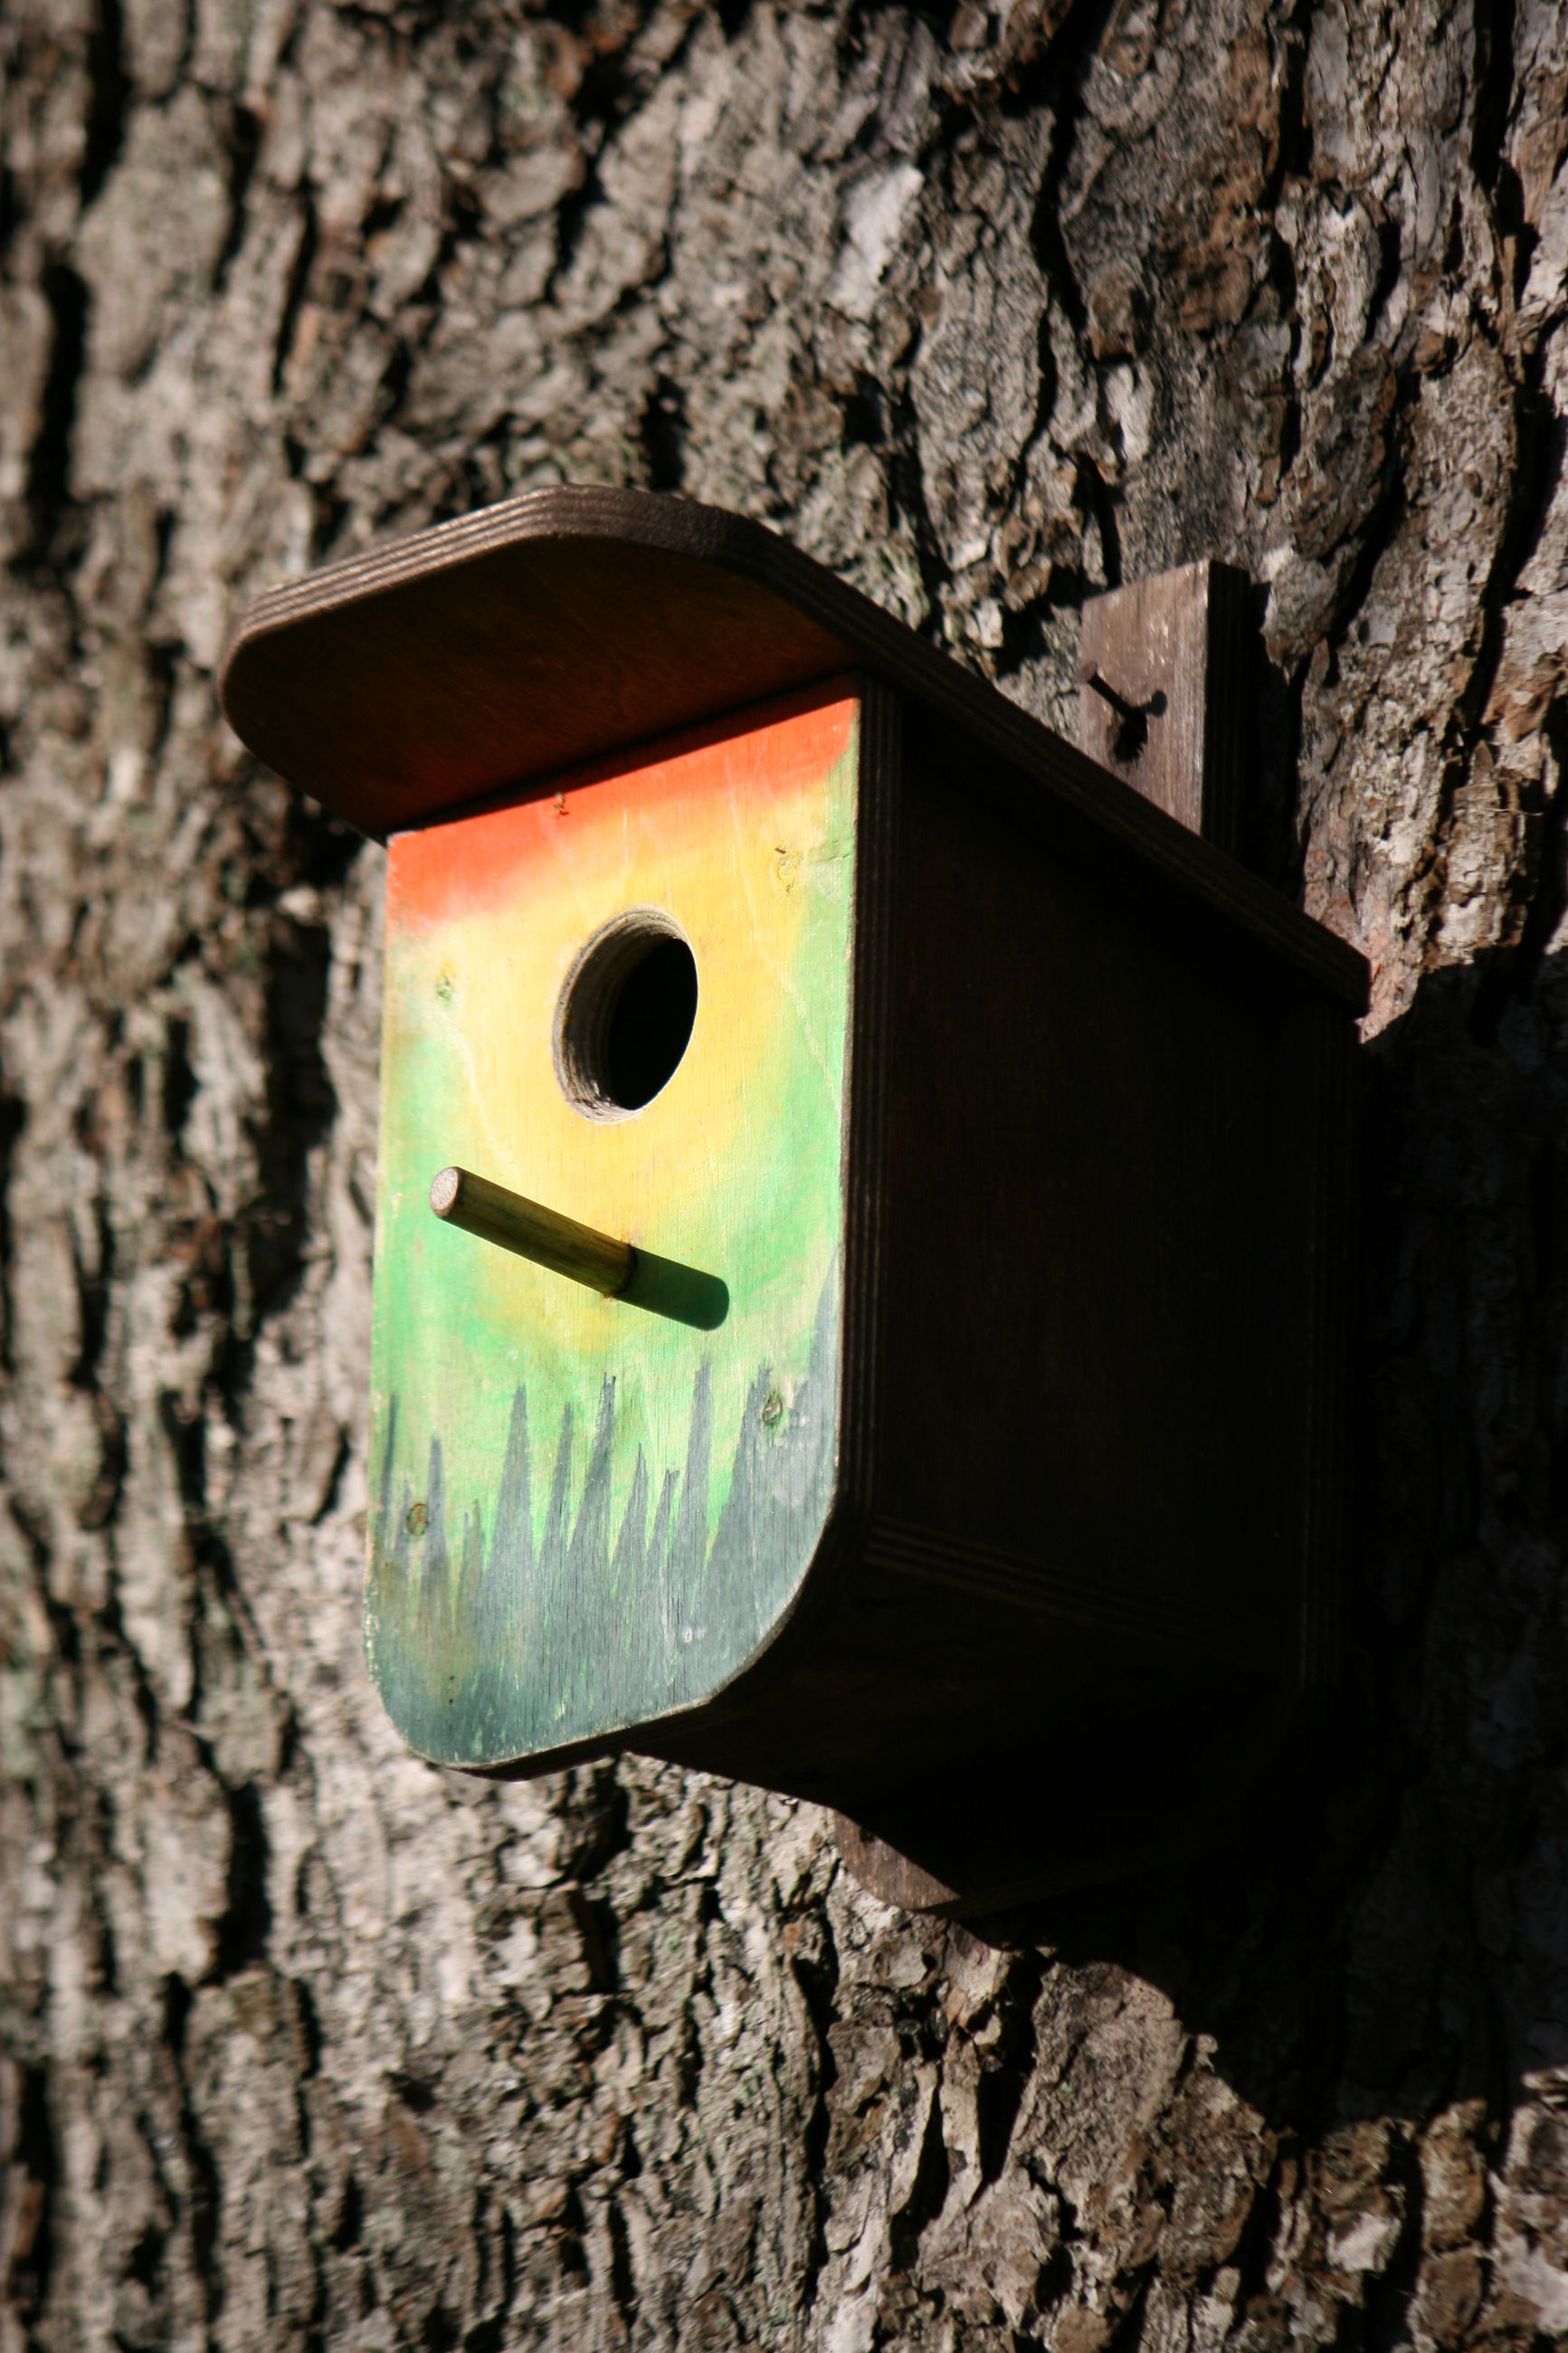 sunlight, no people, social issues, close-up, nature, outdoors, birdhouse, day